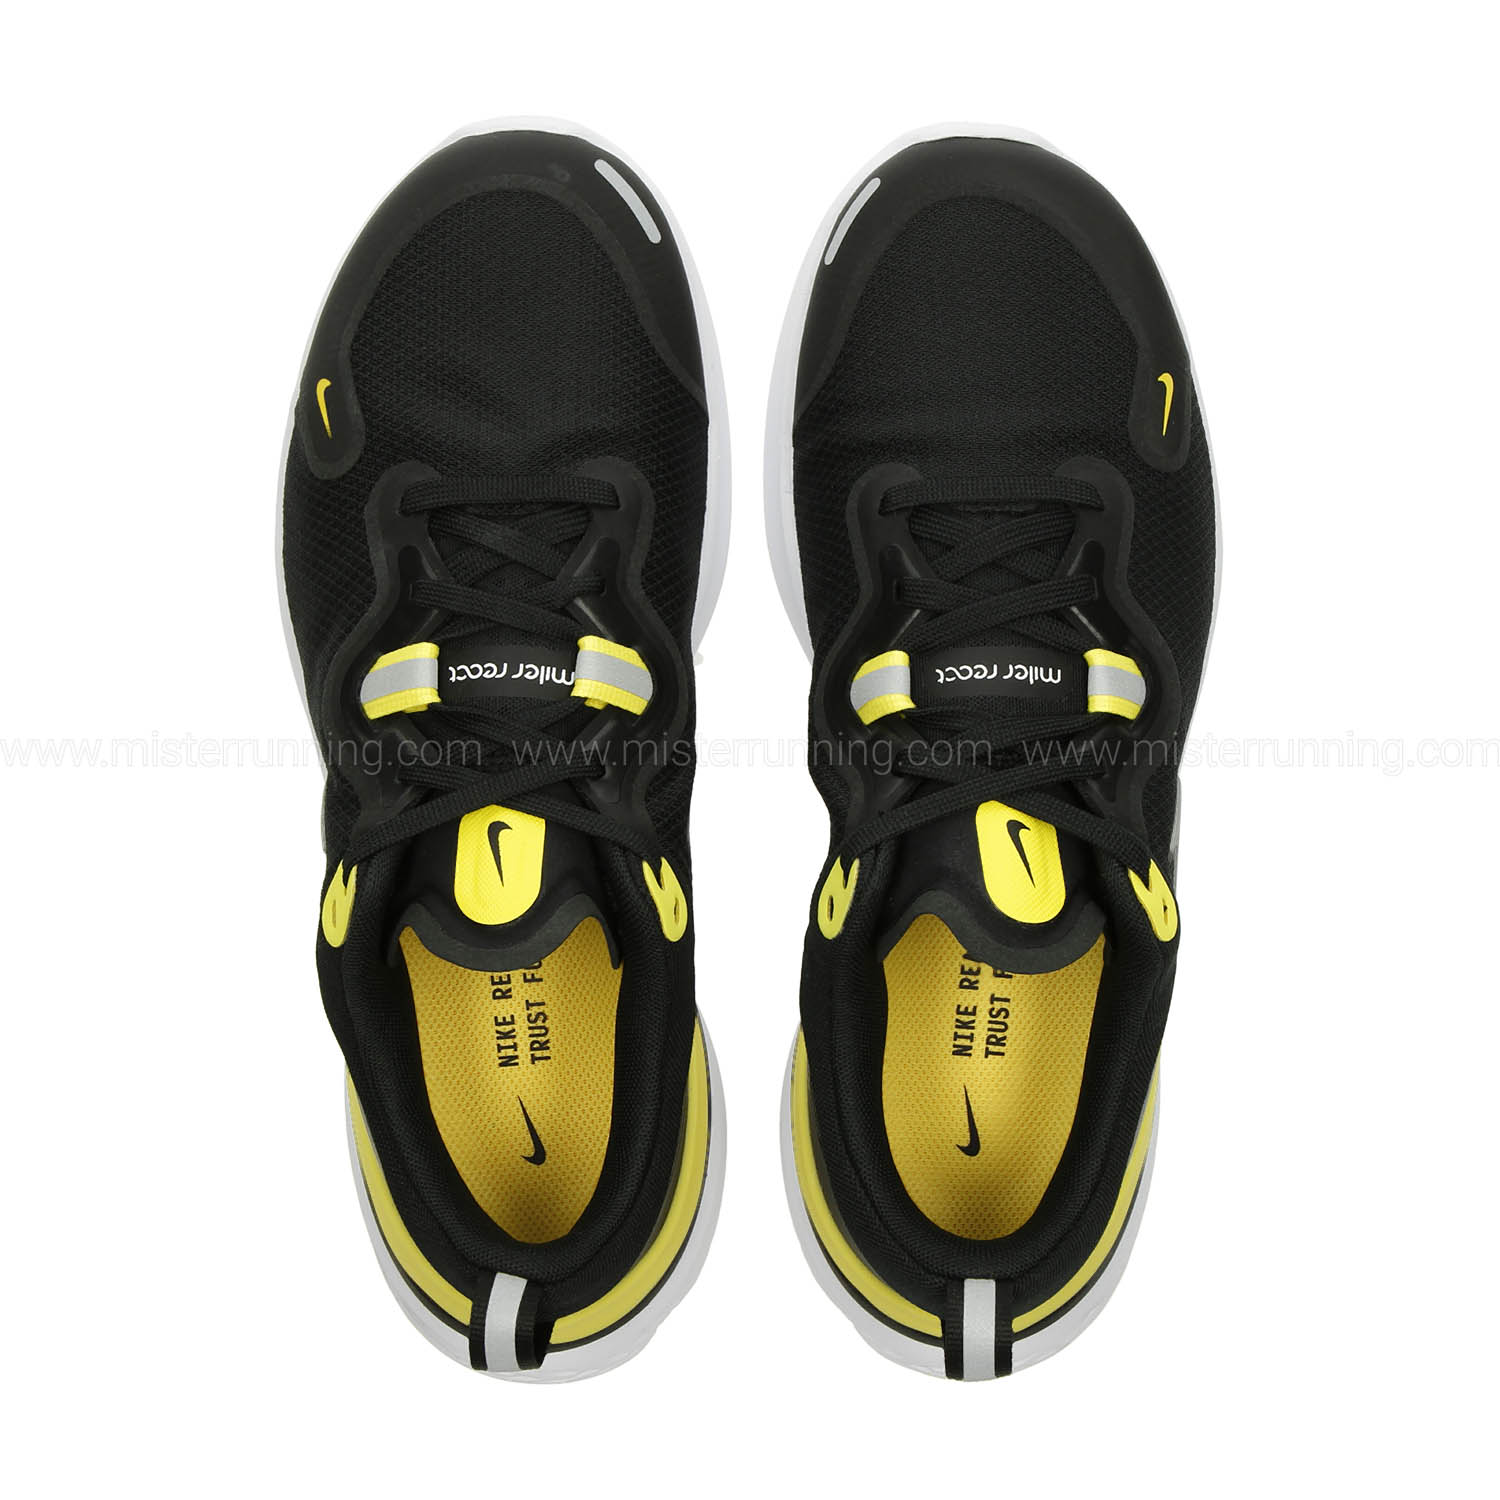 Nike React Miler - Black/Metallic Silver/Opti Yellow/White